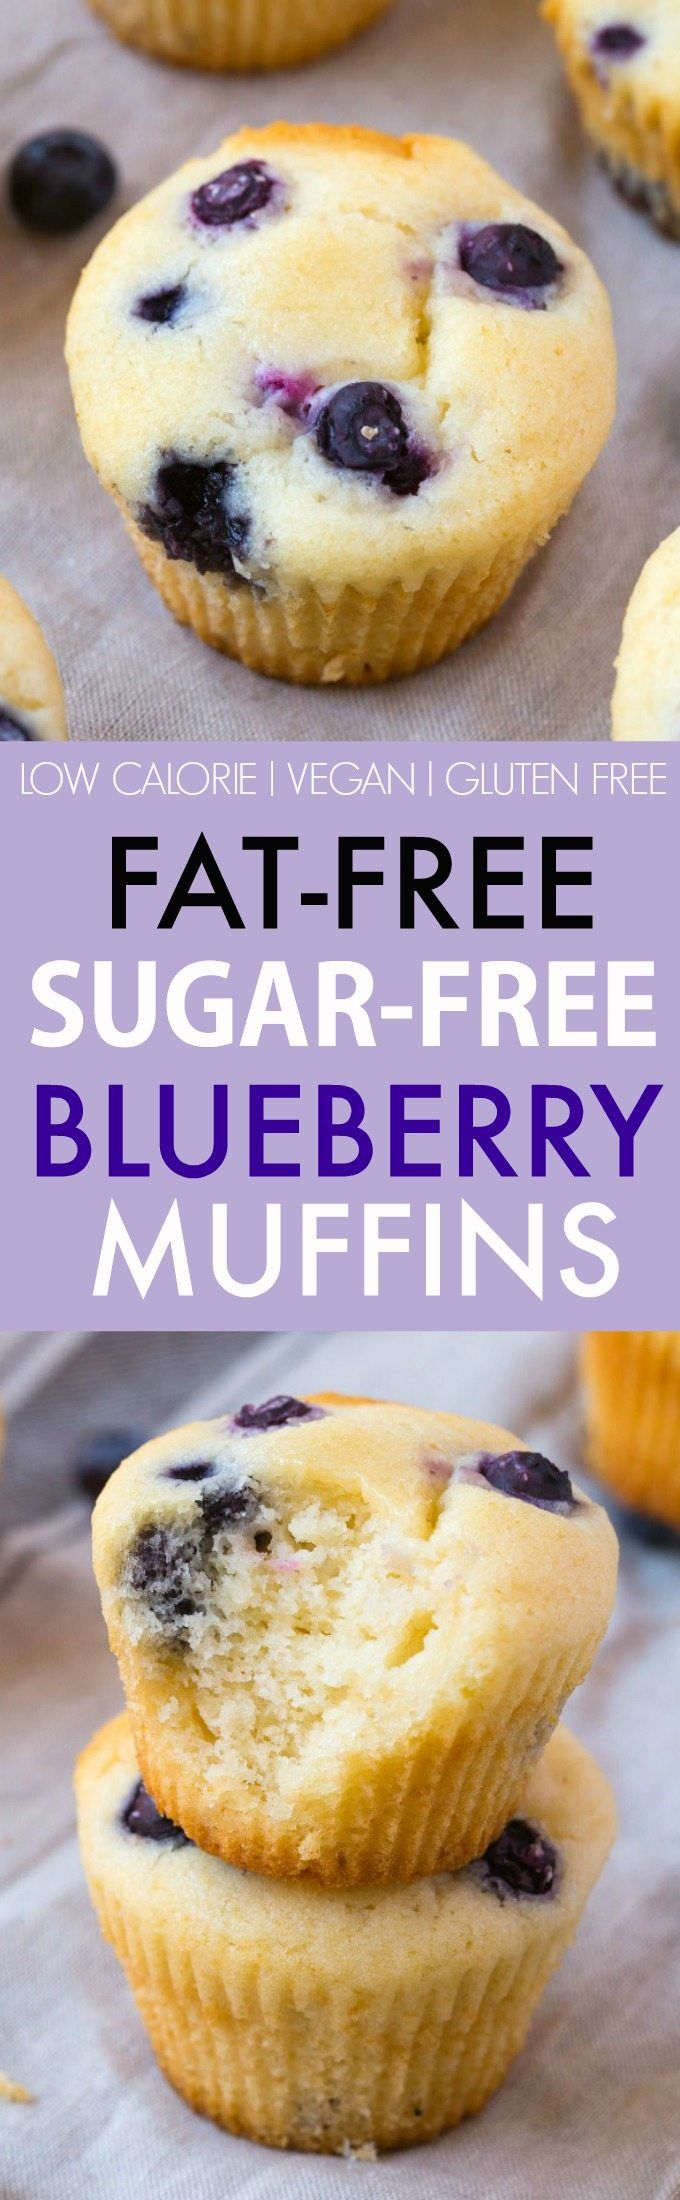 Fat Free Sugar Free Blueberry Muffins (V, GF, DF)- Moist and fluffy muffins which are tender on the outside- Made with ZERO fat and ZERO sugar, they are completely guilt-free! Easy, one bowl snack and healthy baked good! vegan, gluten free, low calorie r